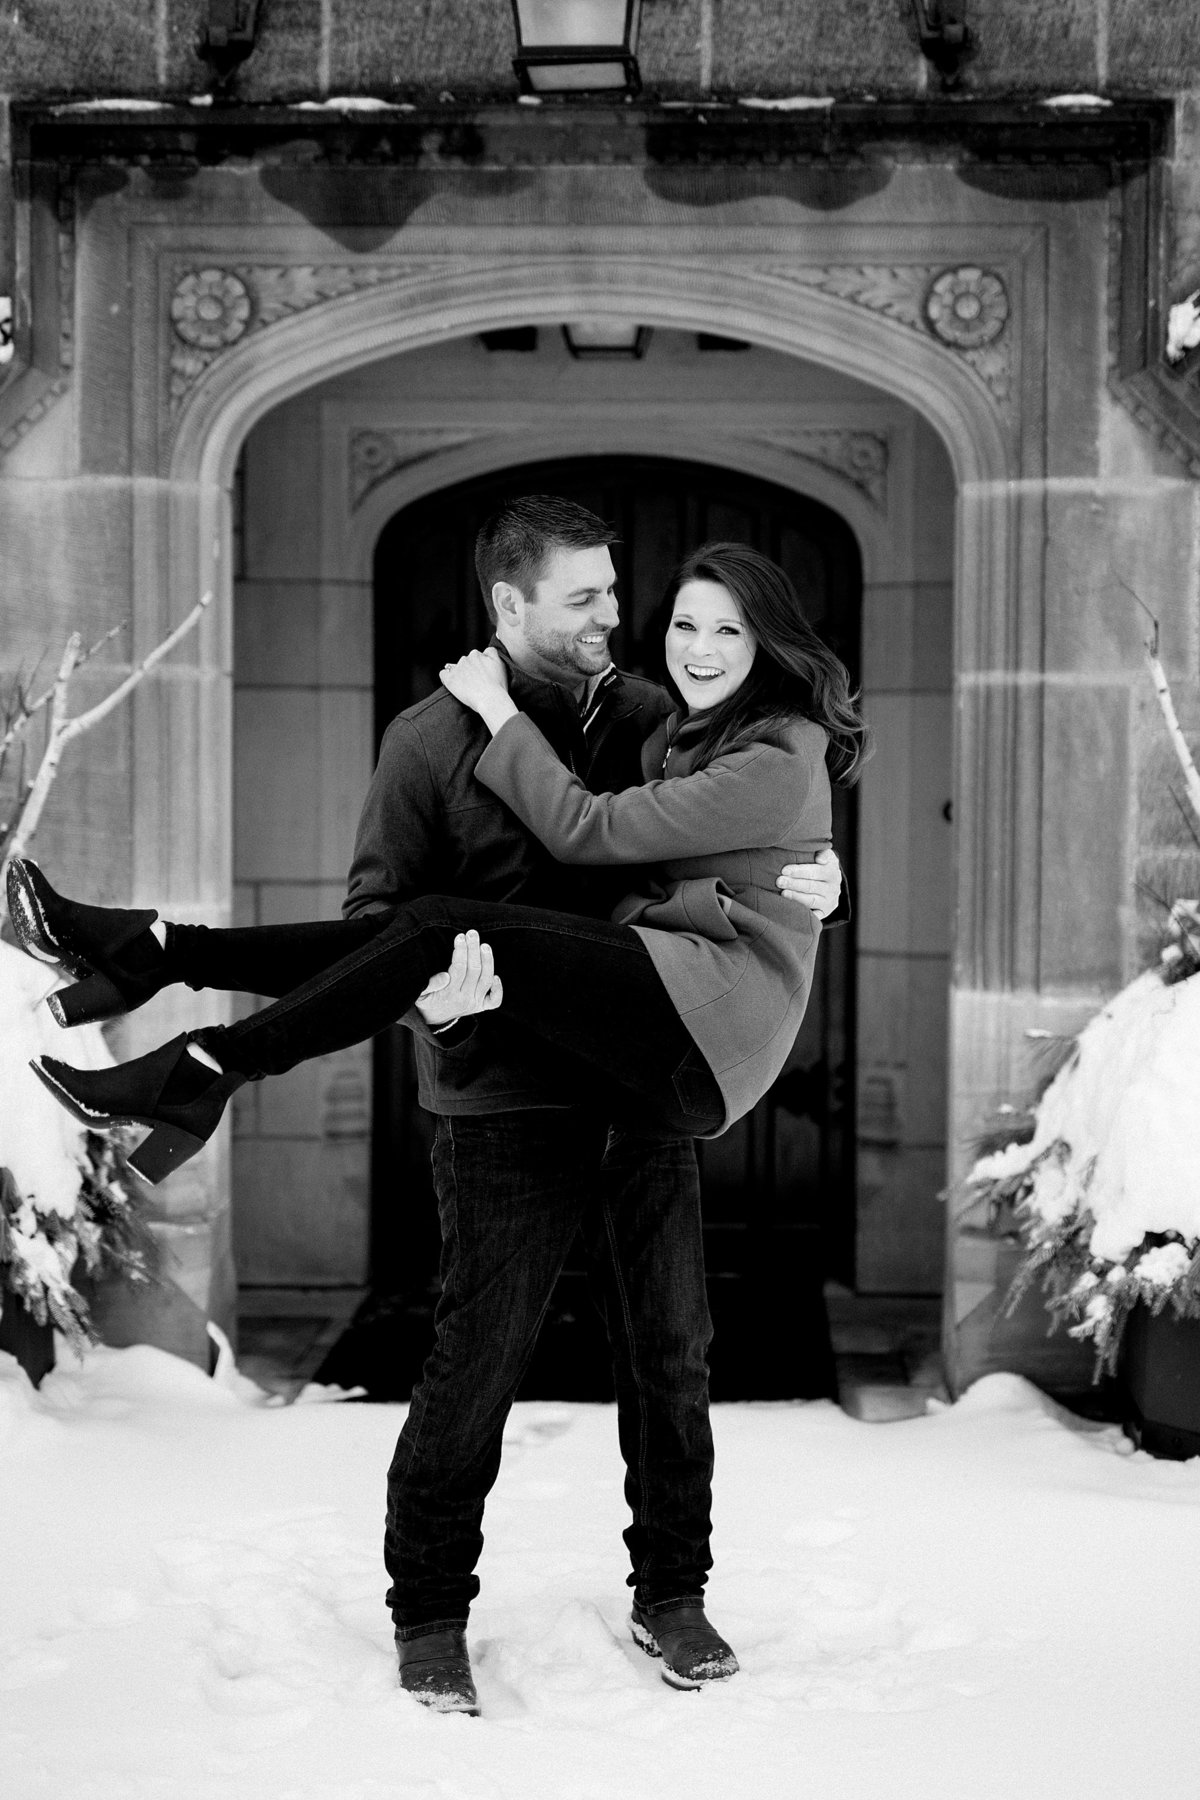 Angela-Blake-Winter-Engagement-Edsel-Eleanor-Ford-House-Breanne-Rochelle-Photography1